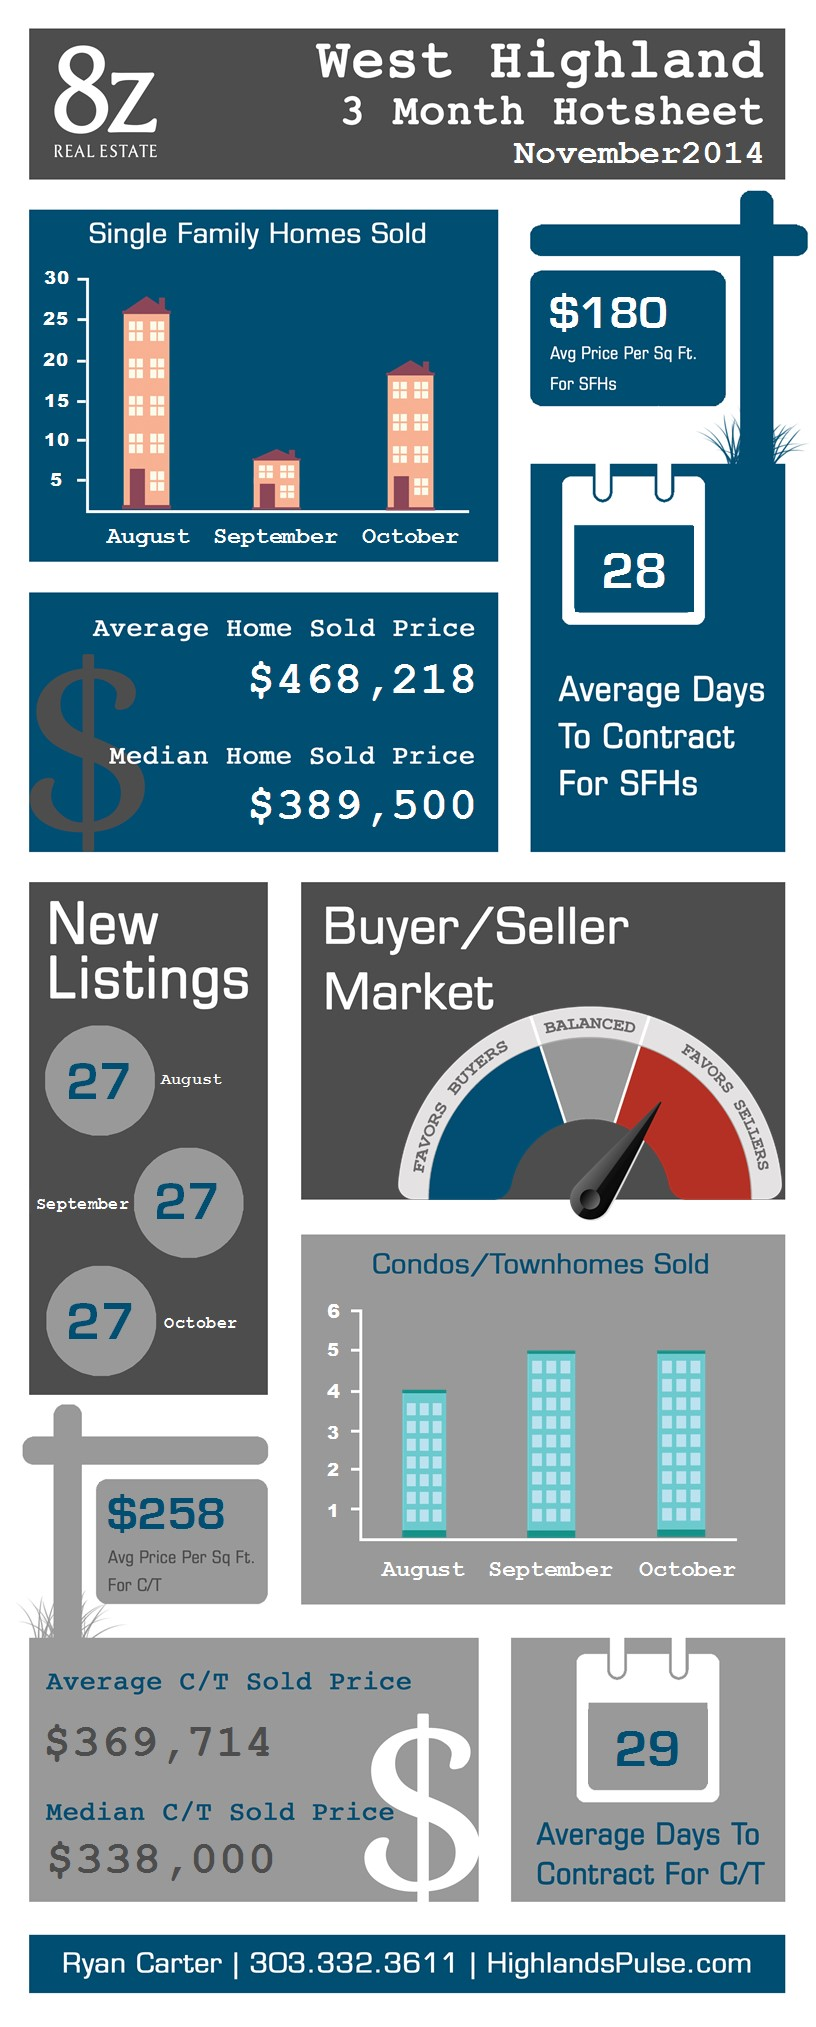 West Highland - Denver, real estate infographic